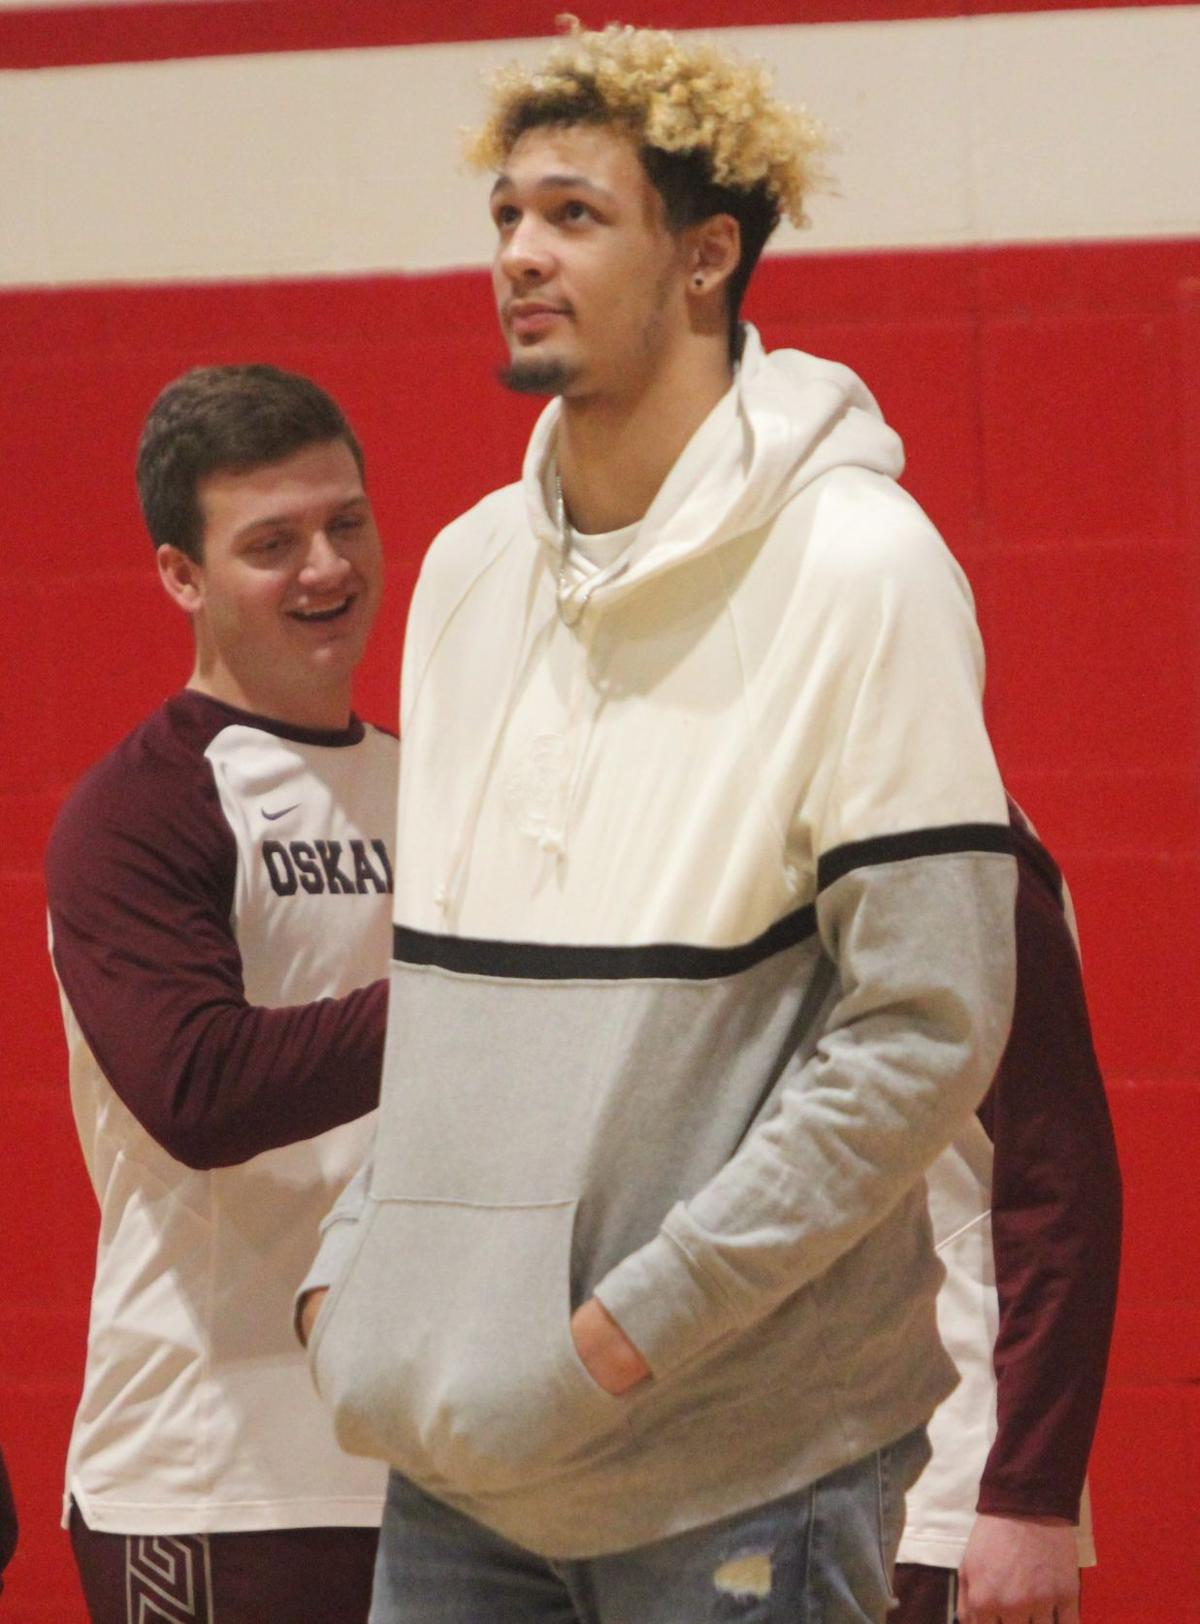 Foster watches as Osky visits Ottumwa (2-4 column photo option)